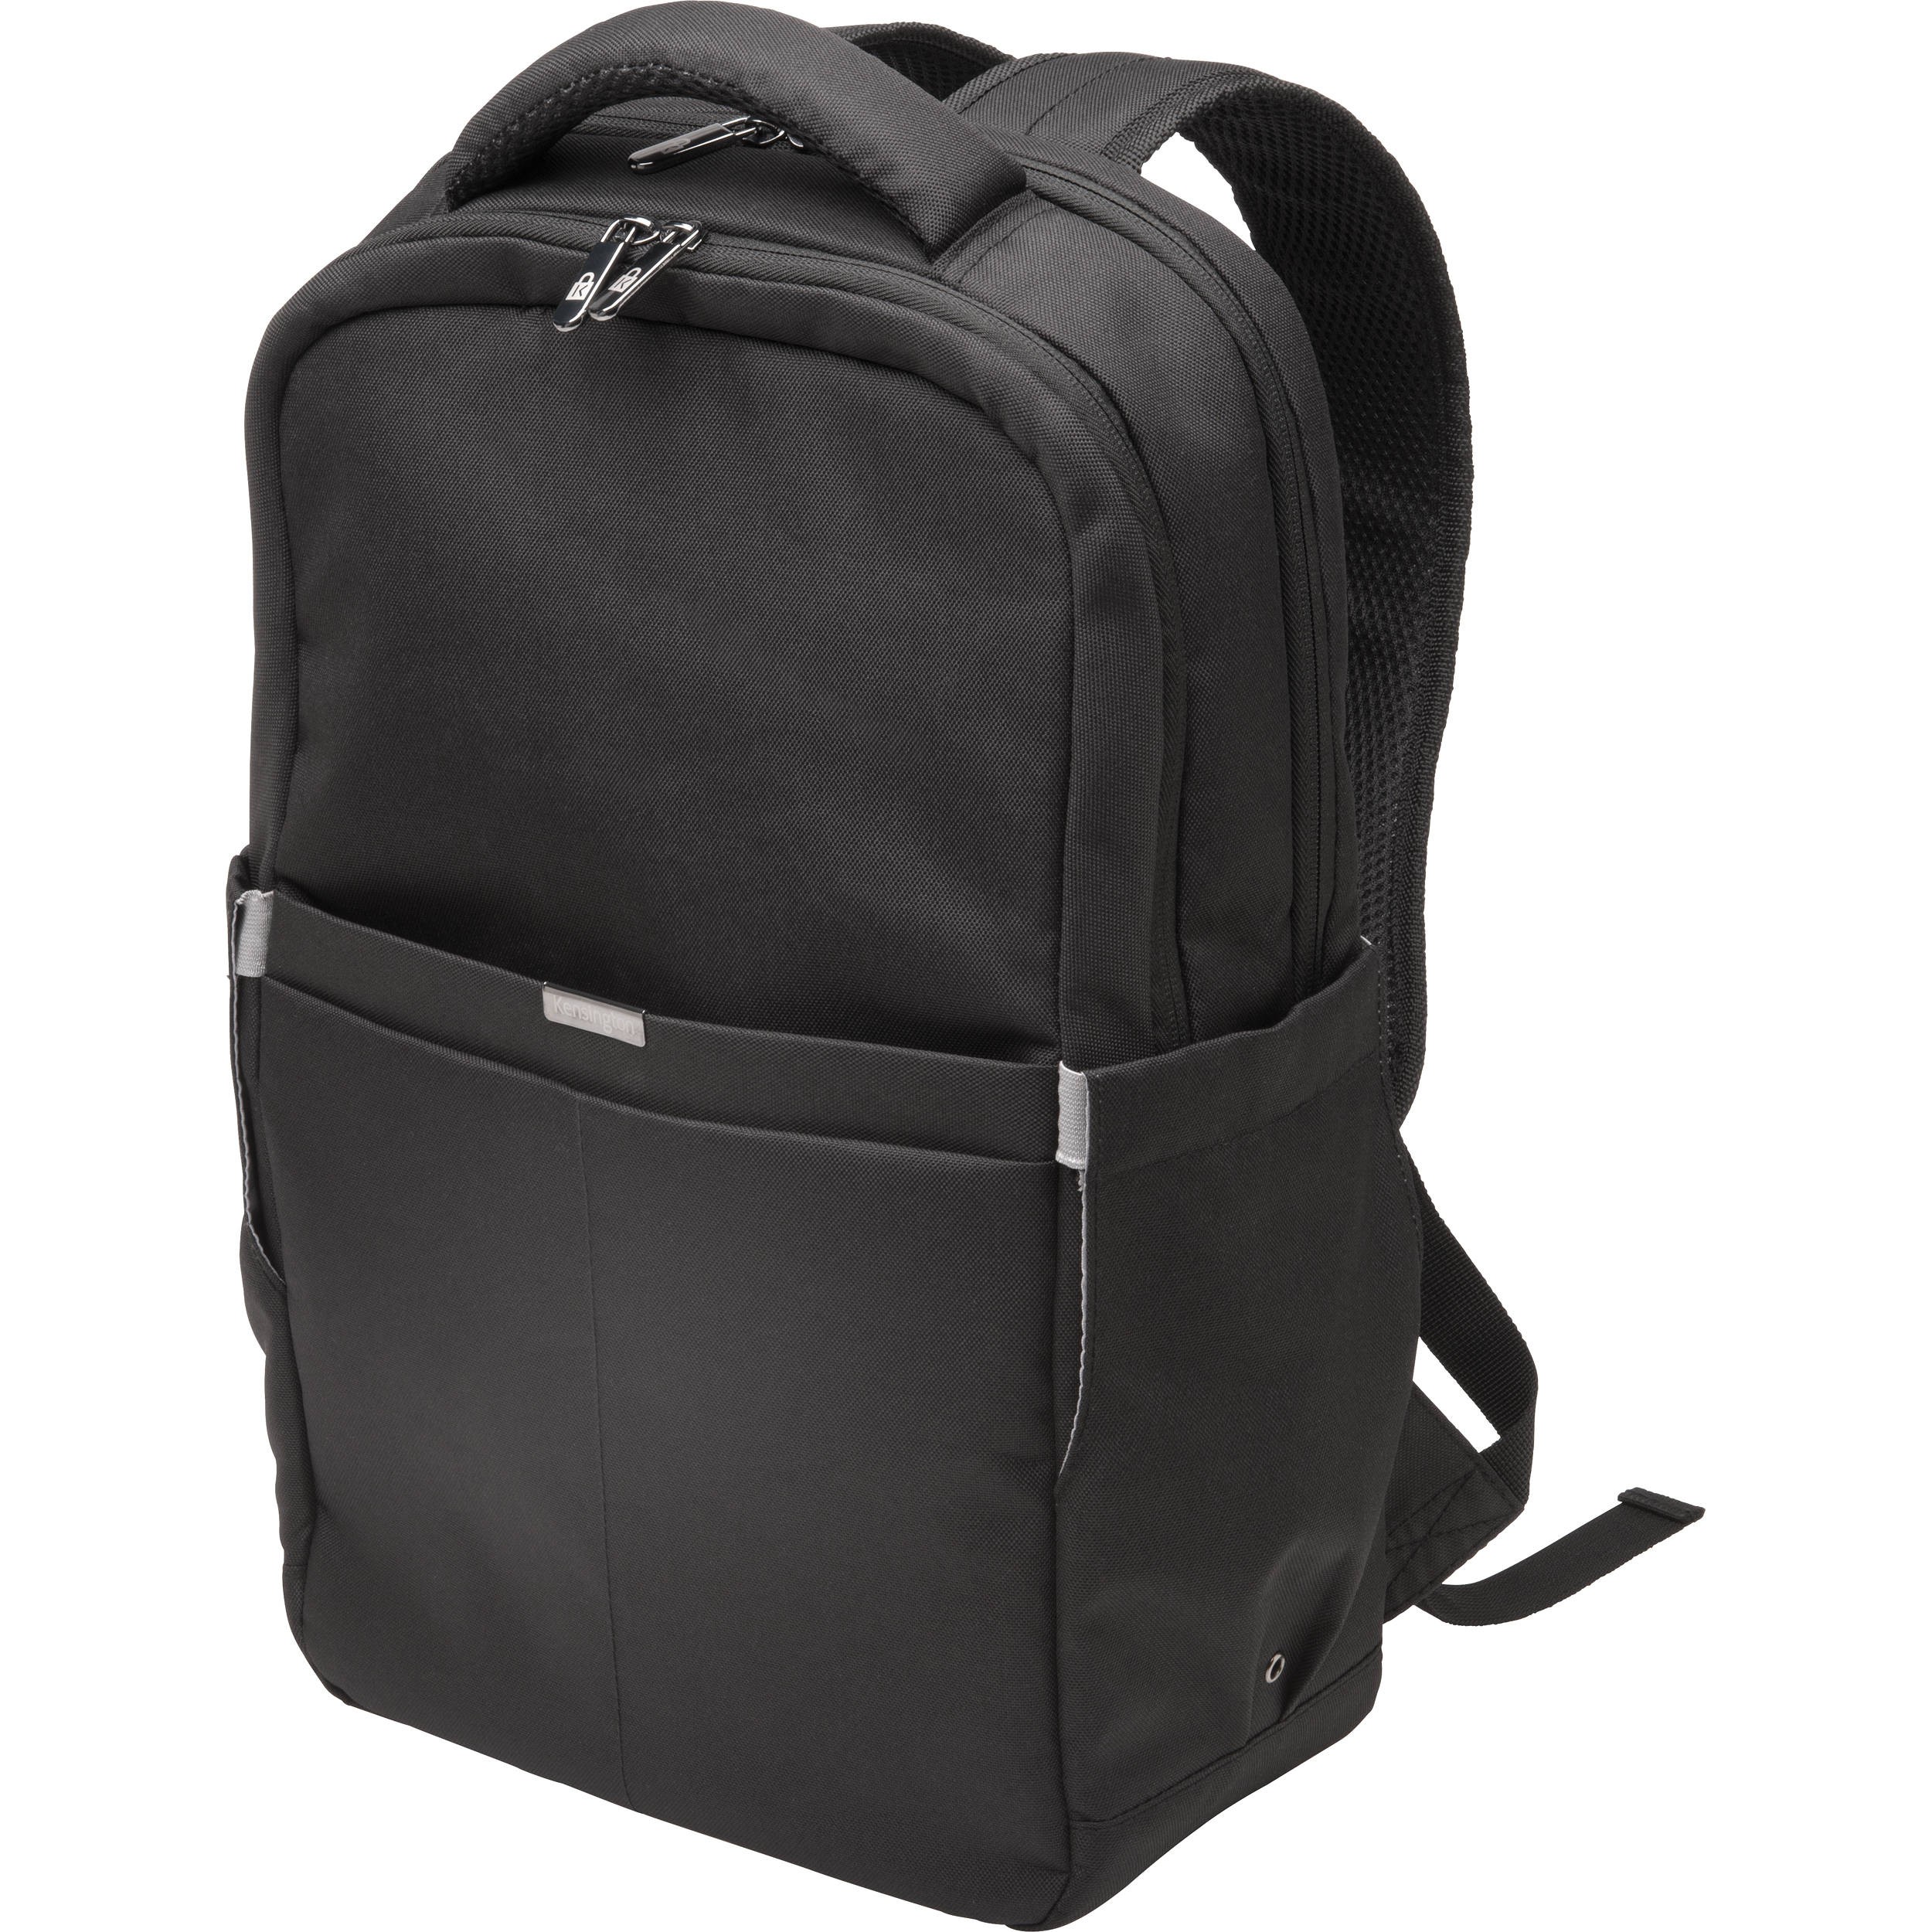 Kensington LS150 Laptop Backpack (Black) K62617WW B&H Photo